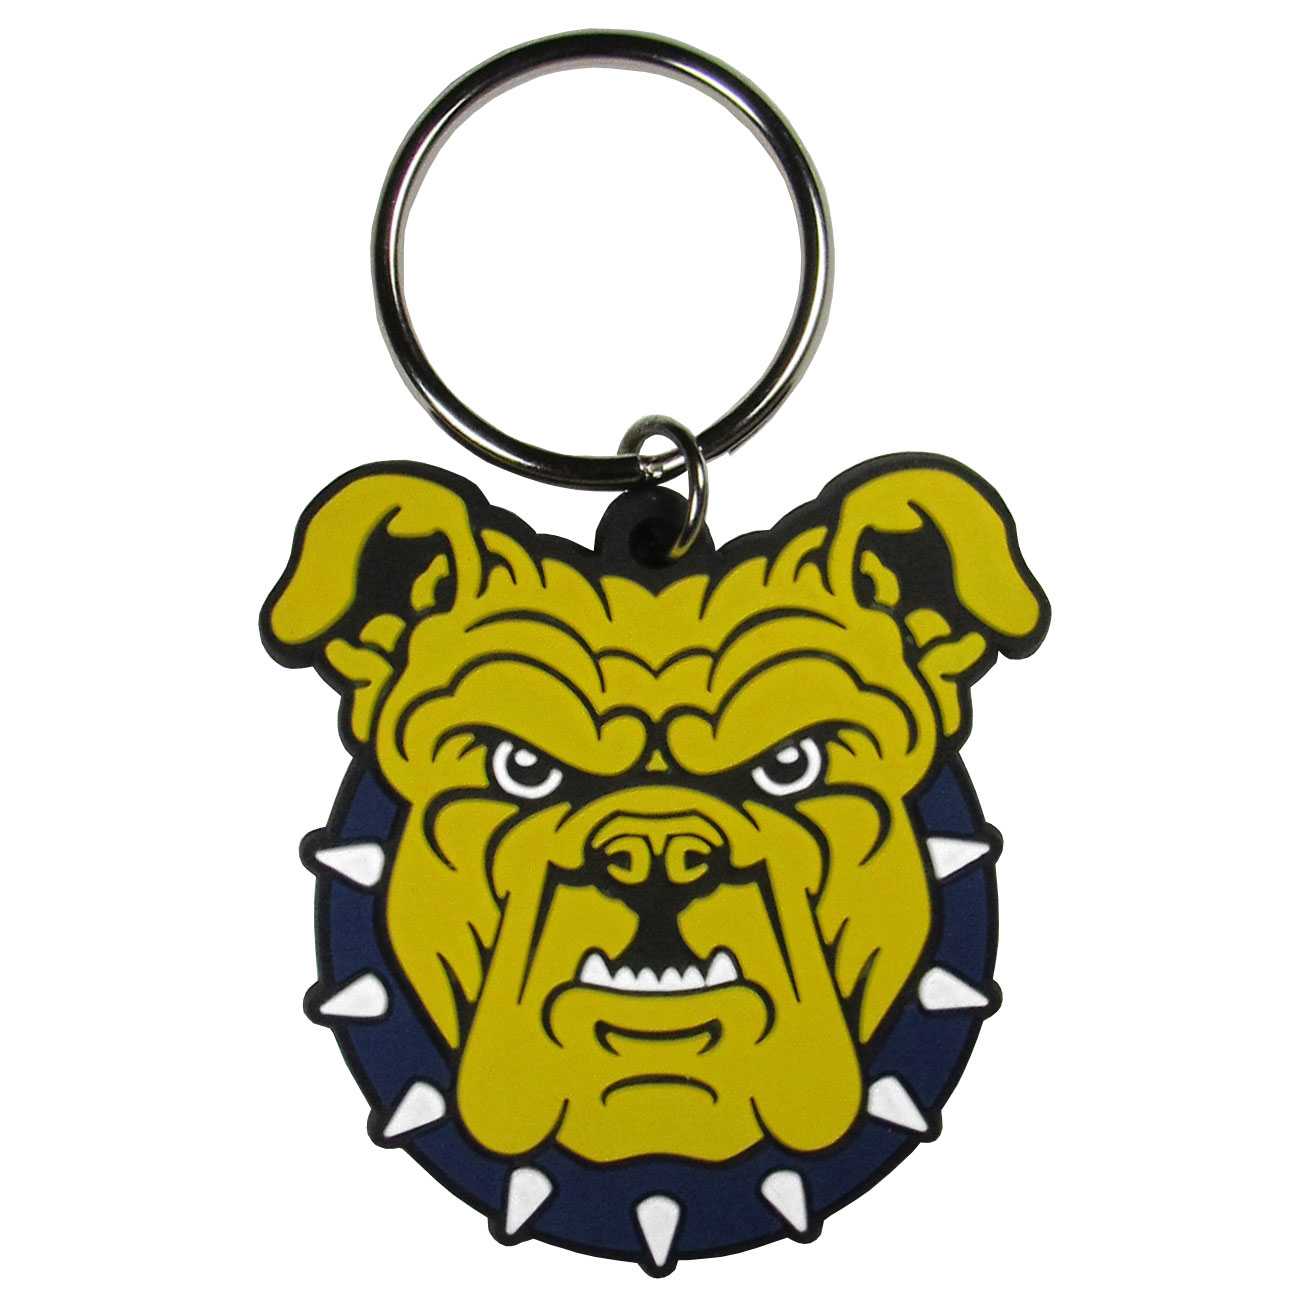 N. Carolina A&T Aggies Flex Key Chain - Our fun, flexible N. Carolina A&T Aggies key chains are made of a rubbery material that is layered to create a bright, textured logo.